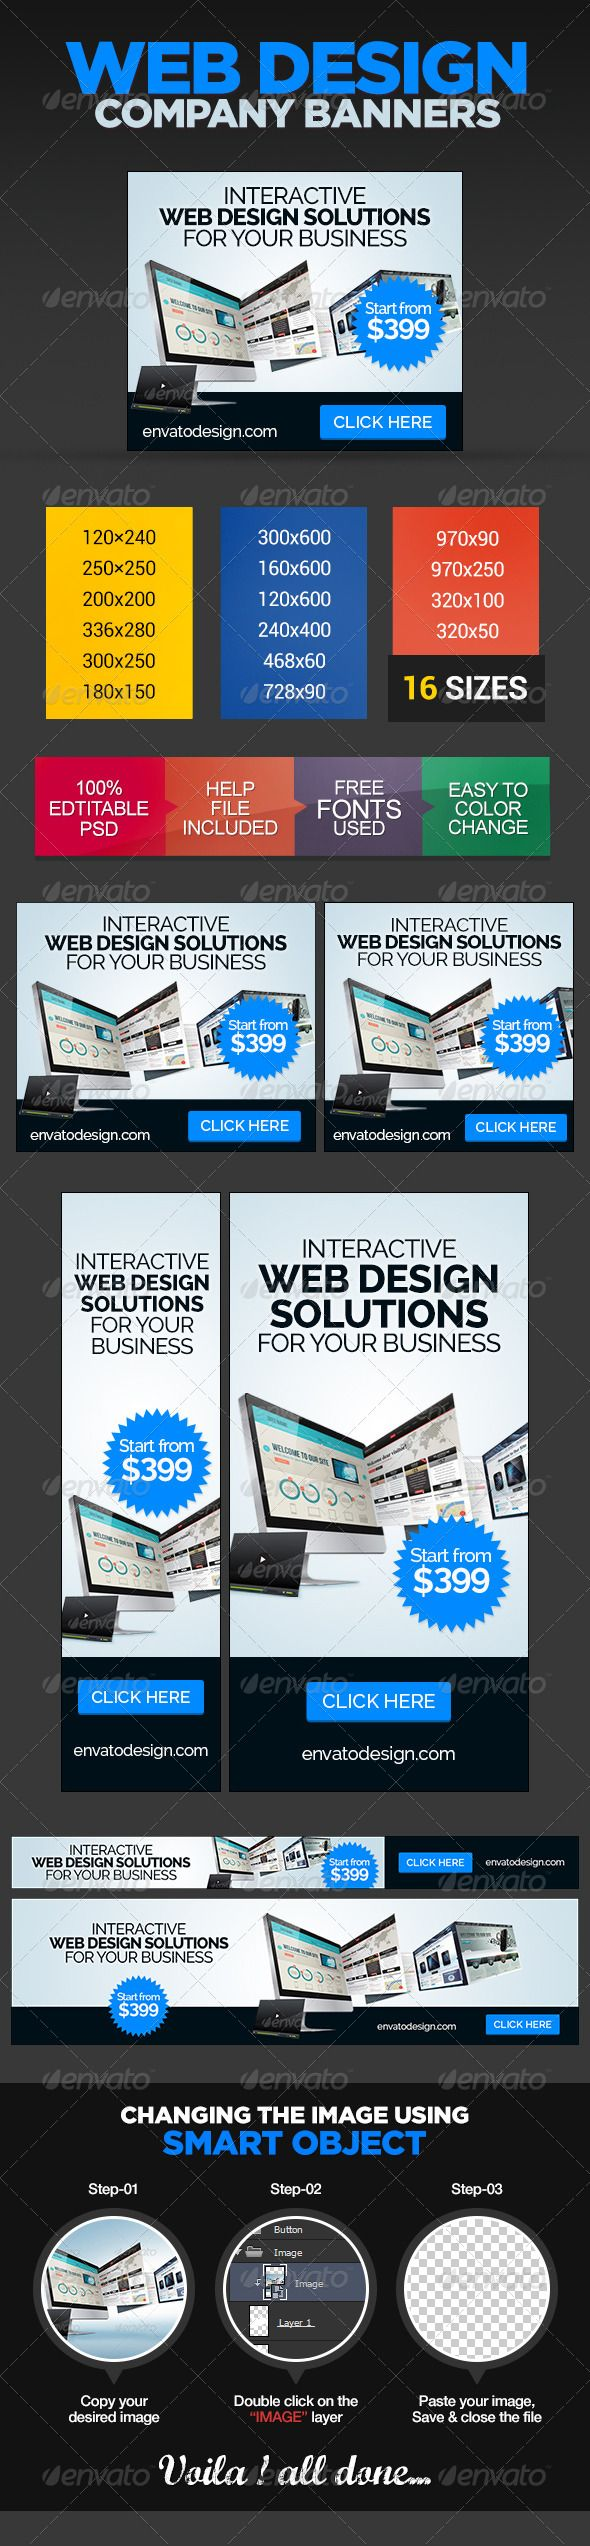 best 25+ company banner ideas on pinterest  kiko kiko warhammer